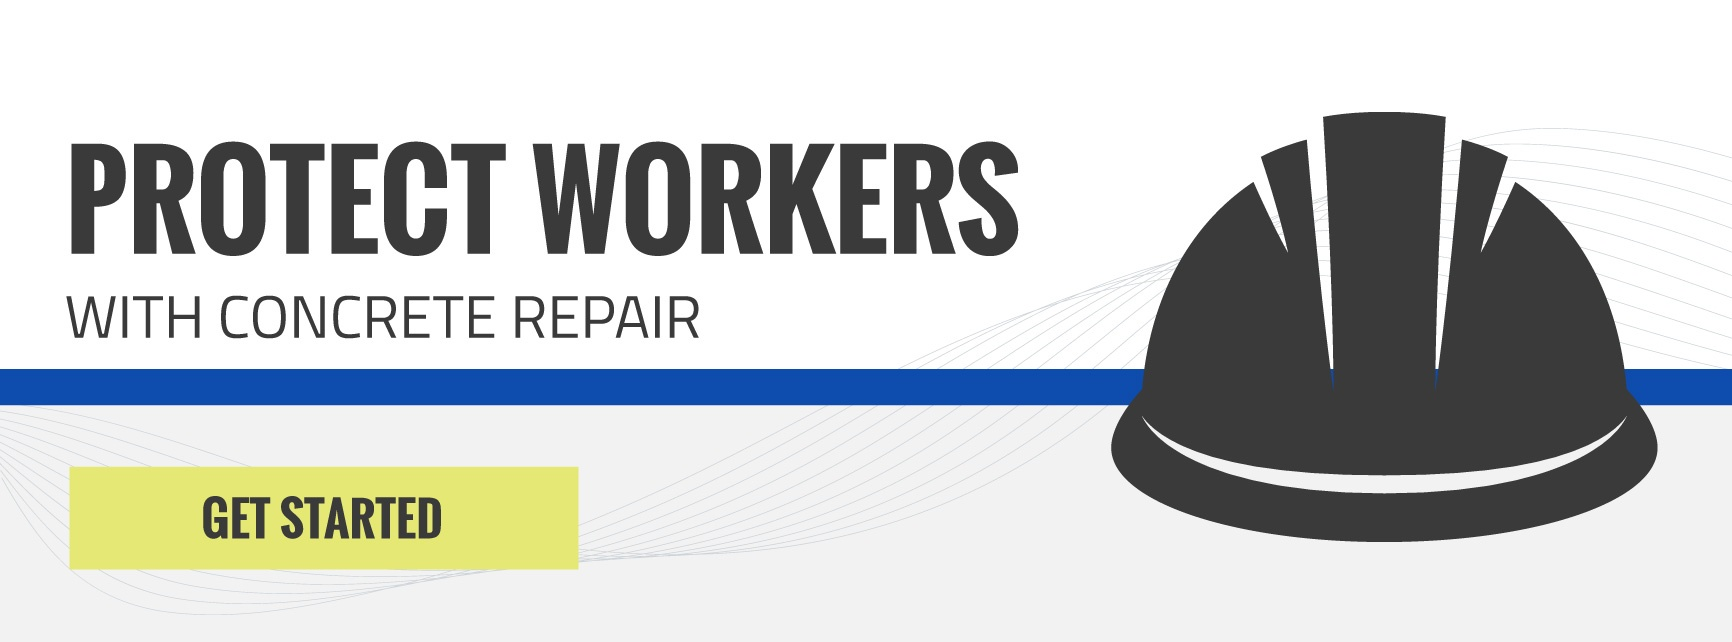 Protect Worker Safety With Concrete Repair